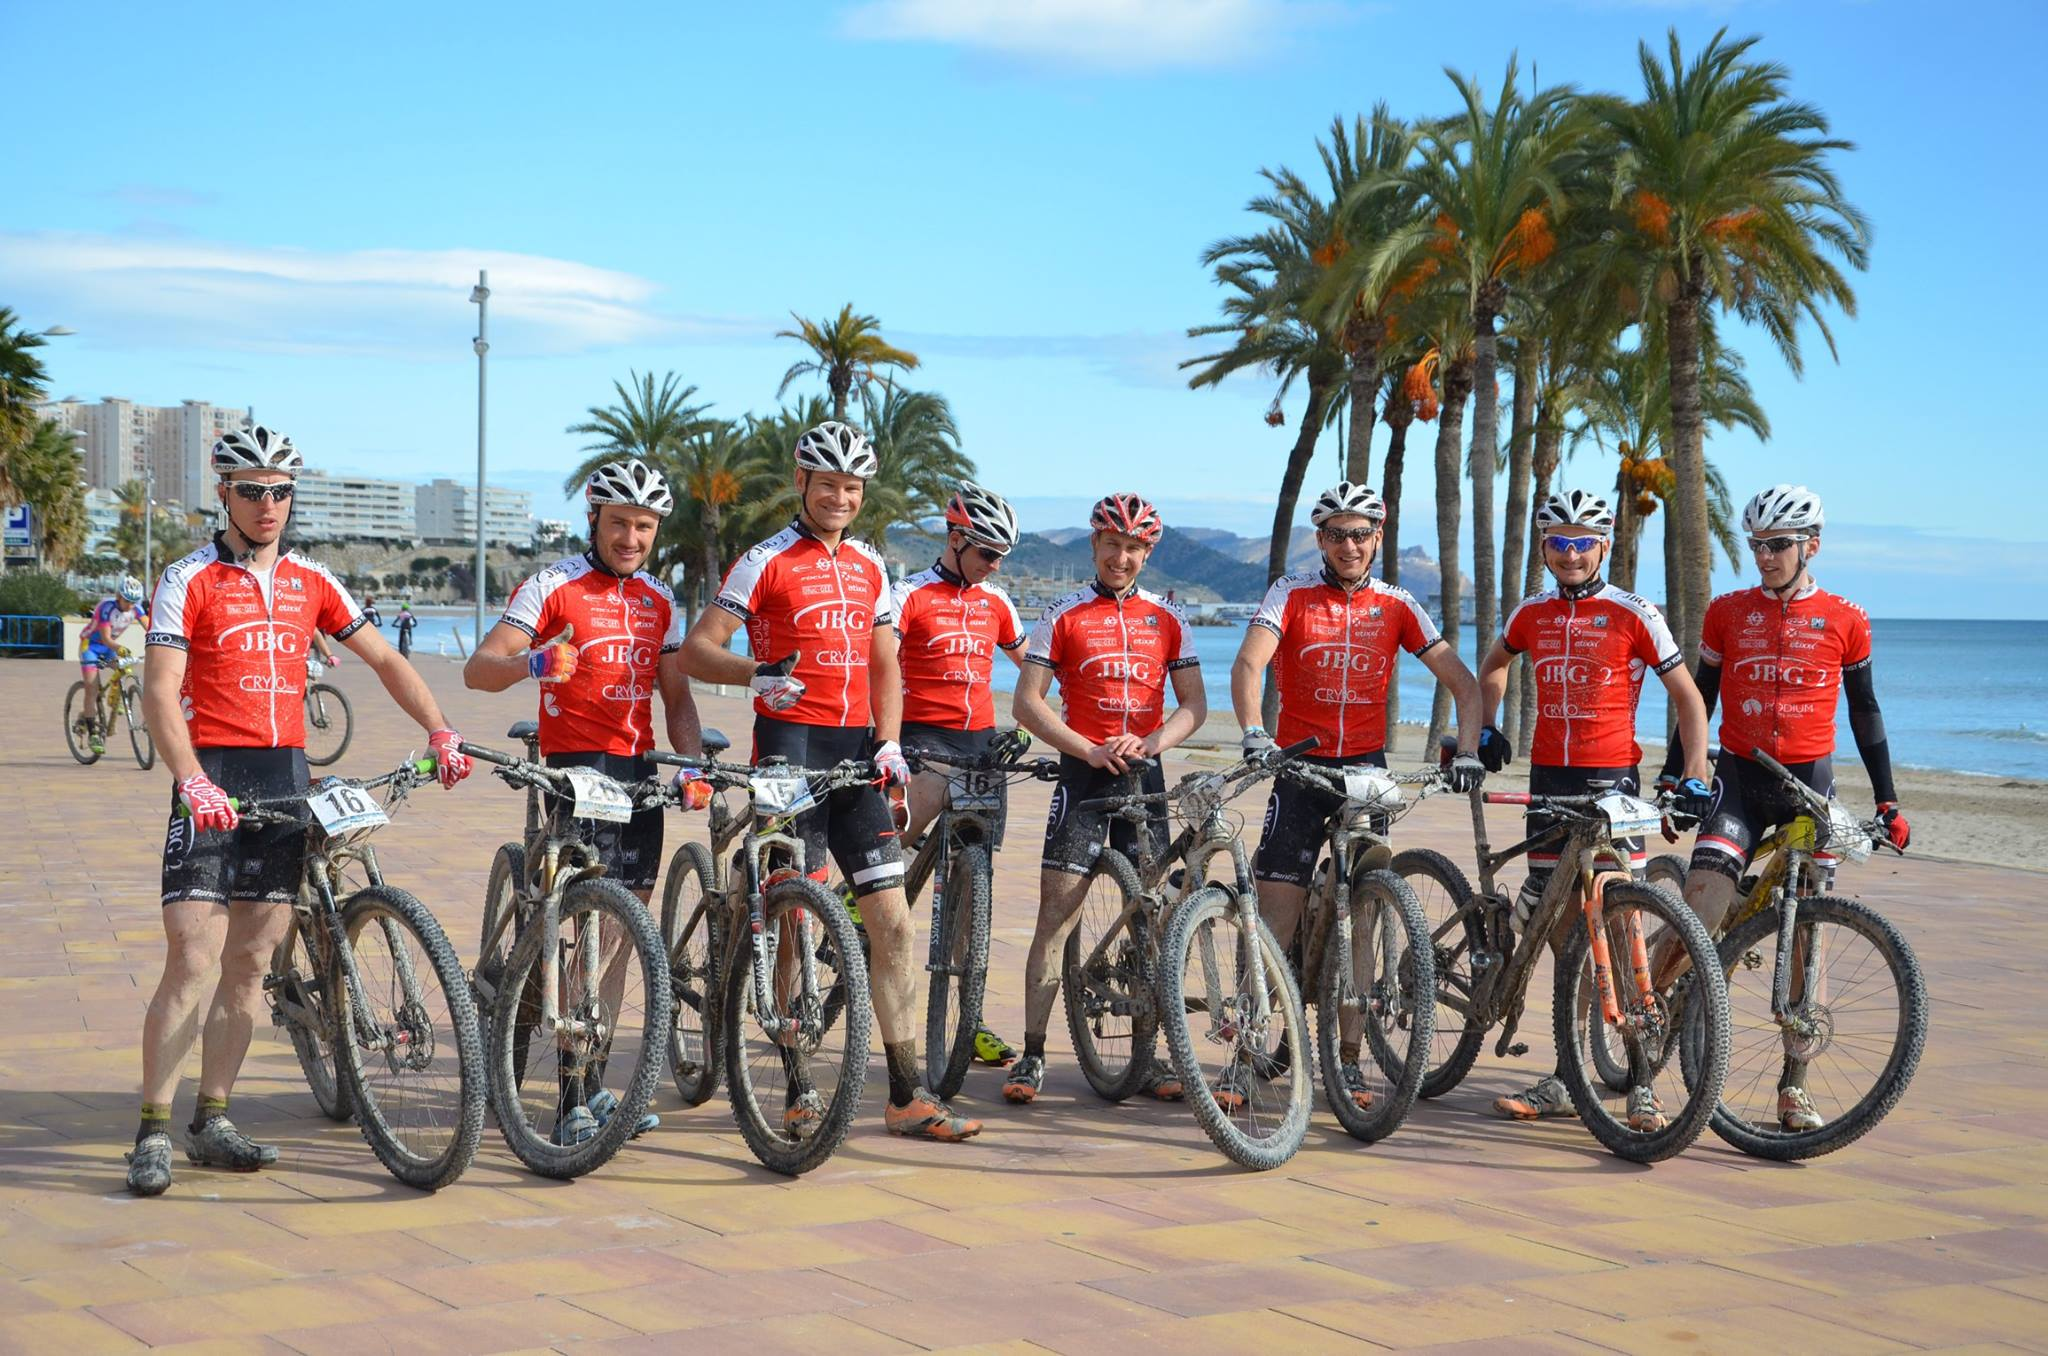 JBG2 Team – Costa Blanca Bike Race, Etap III